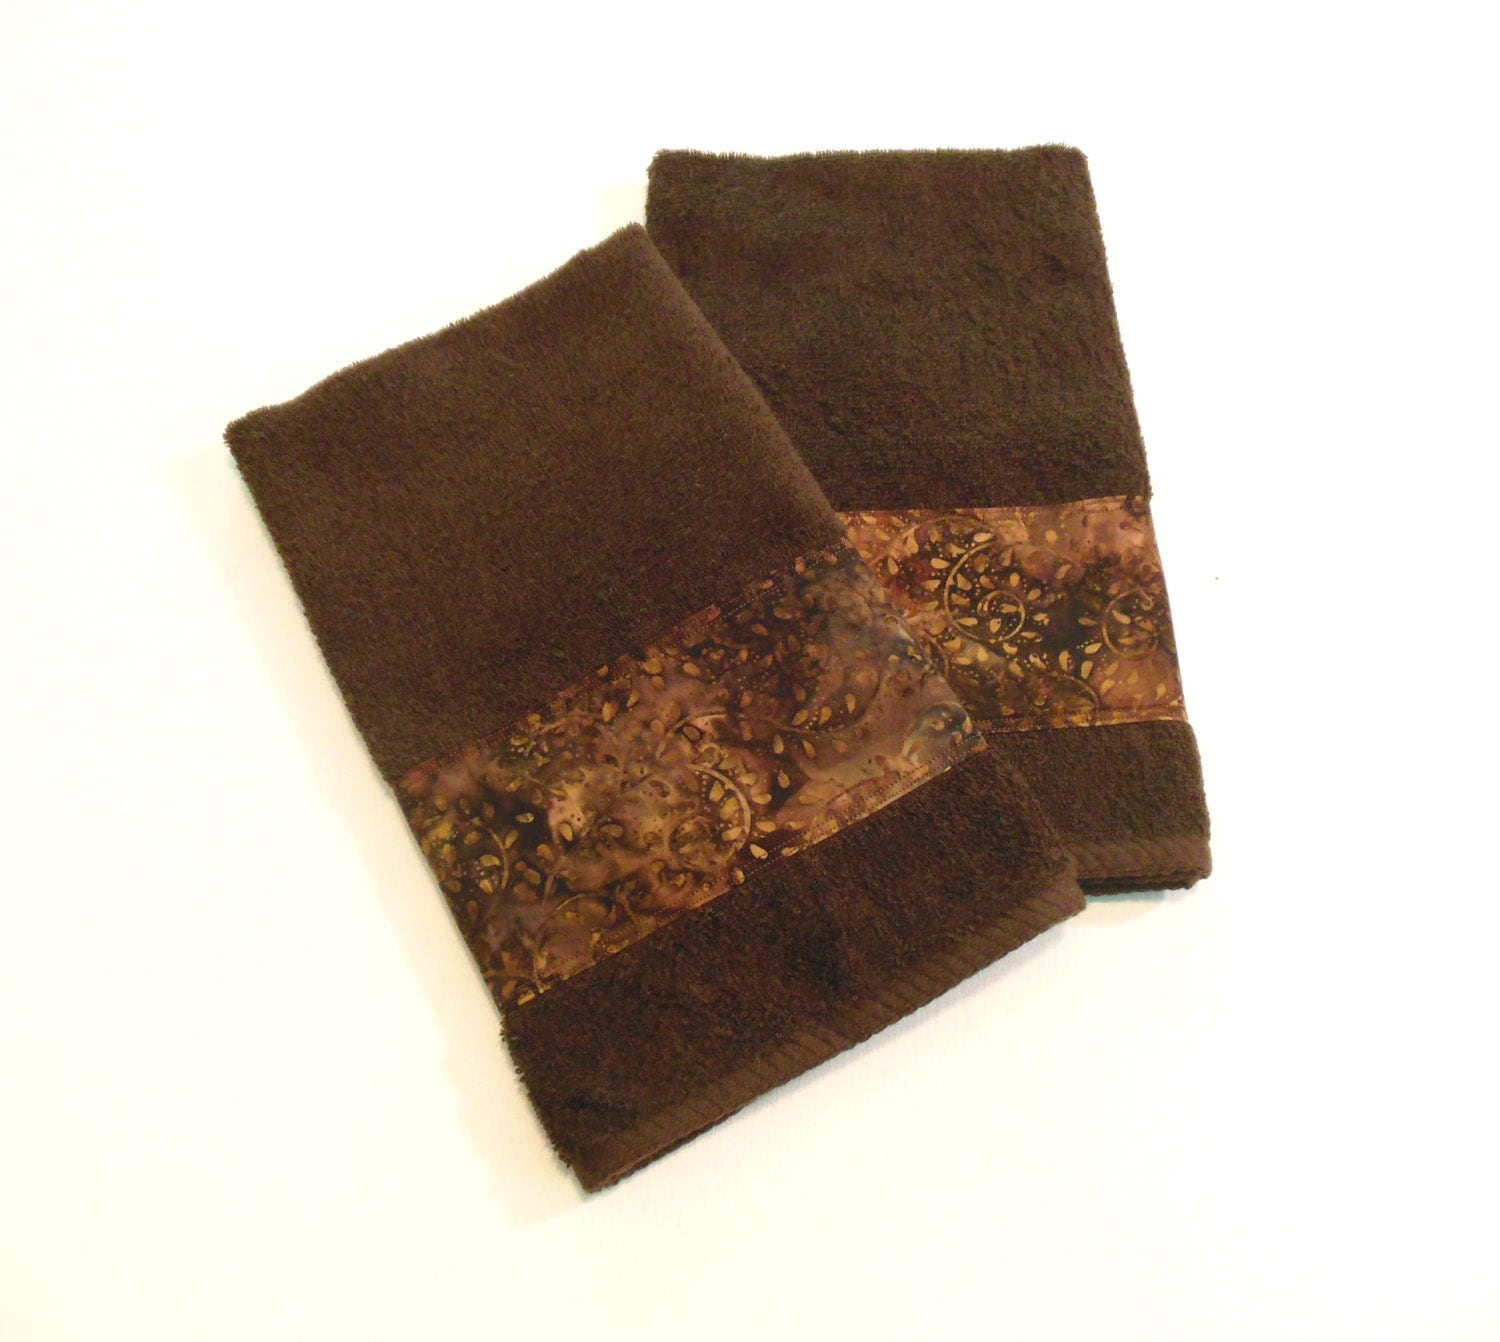 Brown batik hand towels decorative hand towels bathroom towels for Bathroom decorative towels